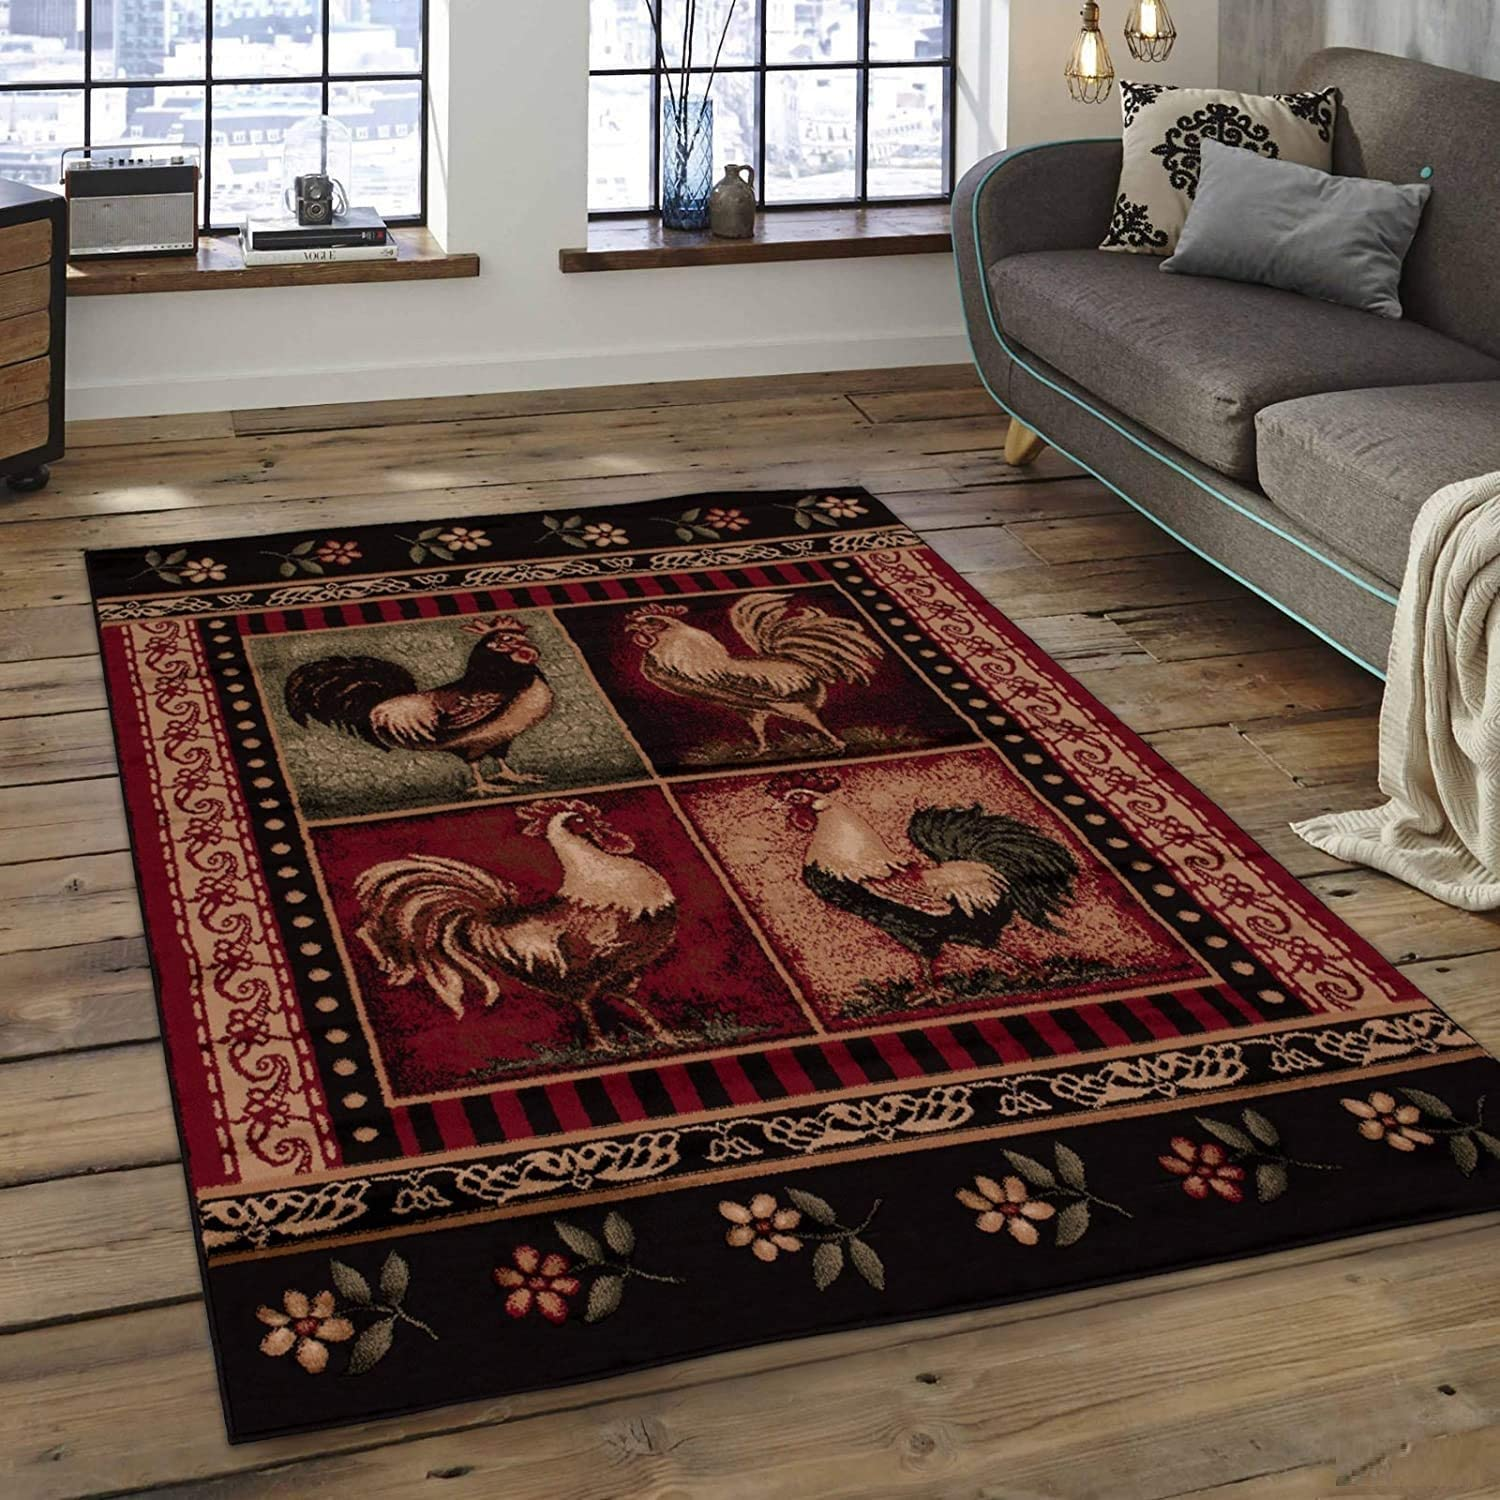 Champion Rugs 正規品 Wildlife Nature Rustic Mul Red Green Rooster Lodge 売れ筋ランキング